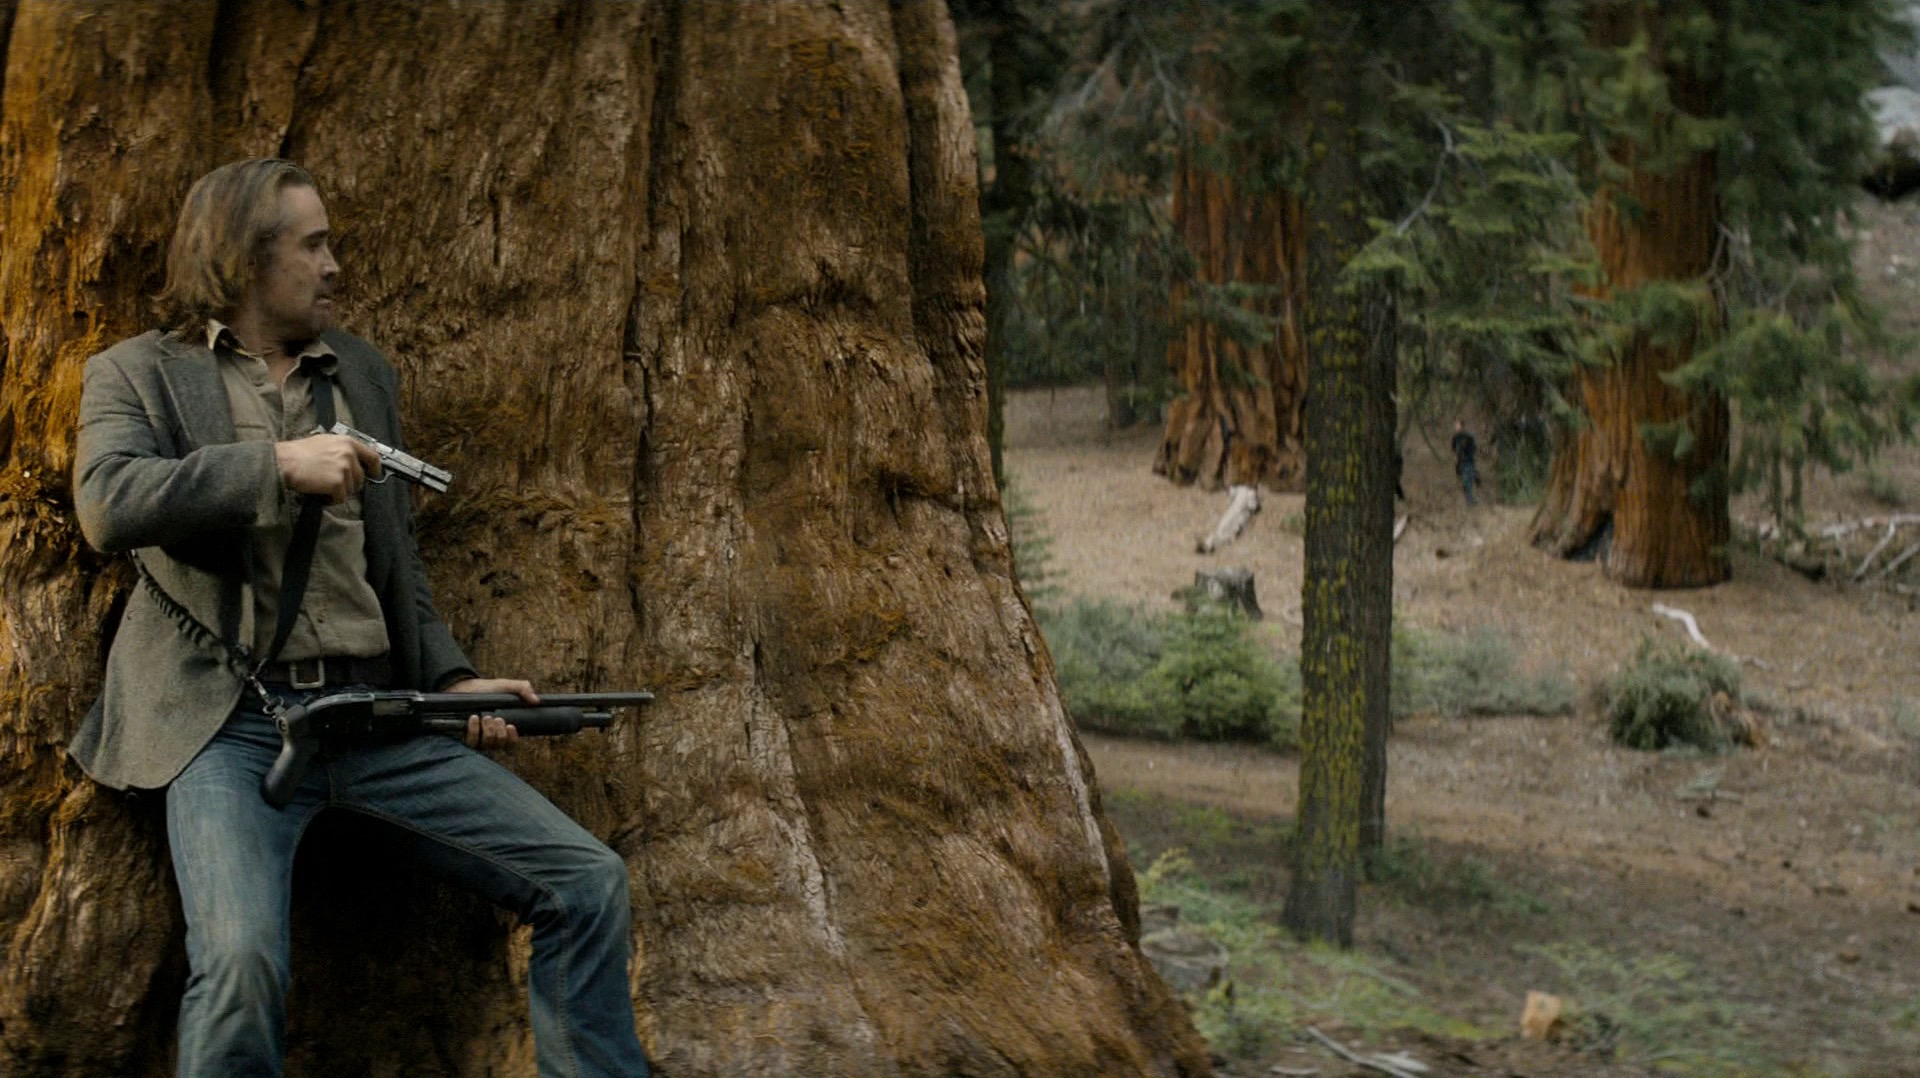 Ray takes cover behind a redwood